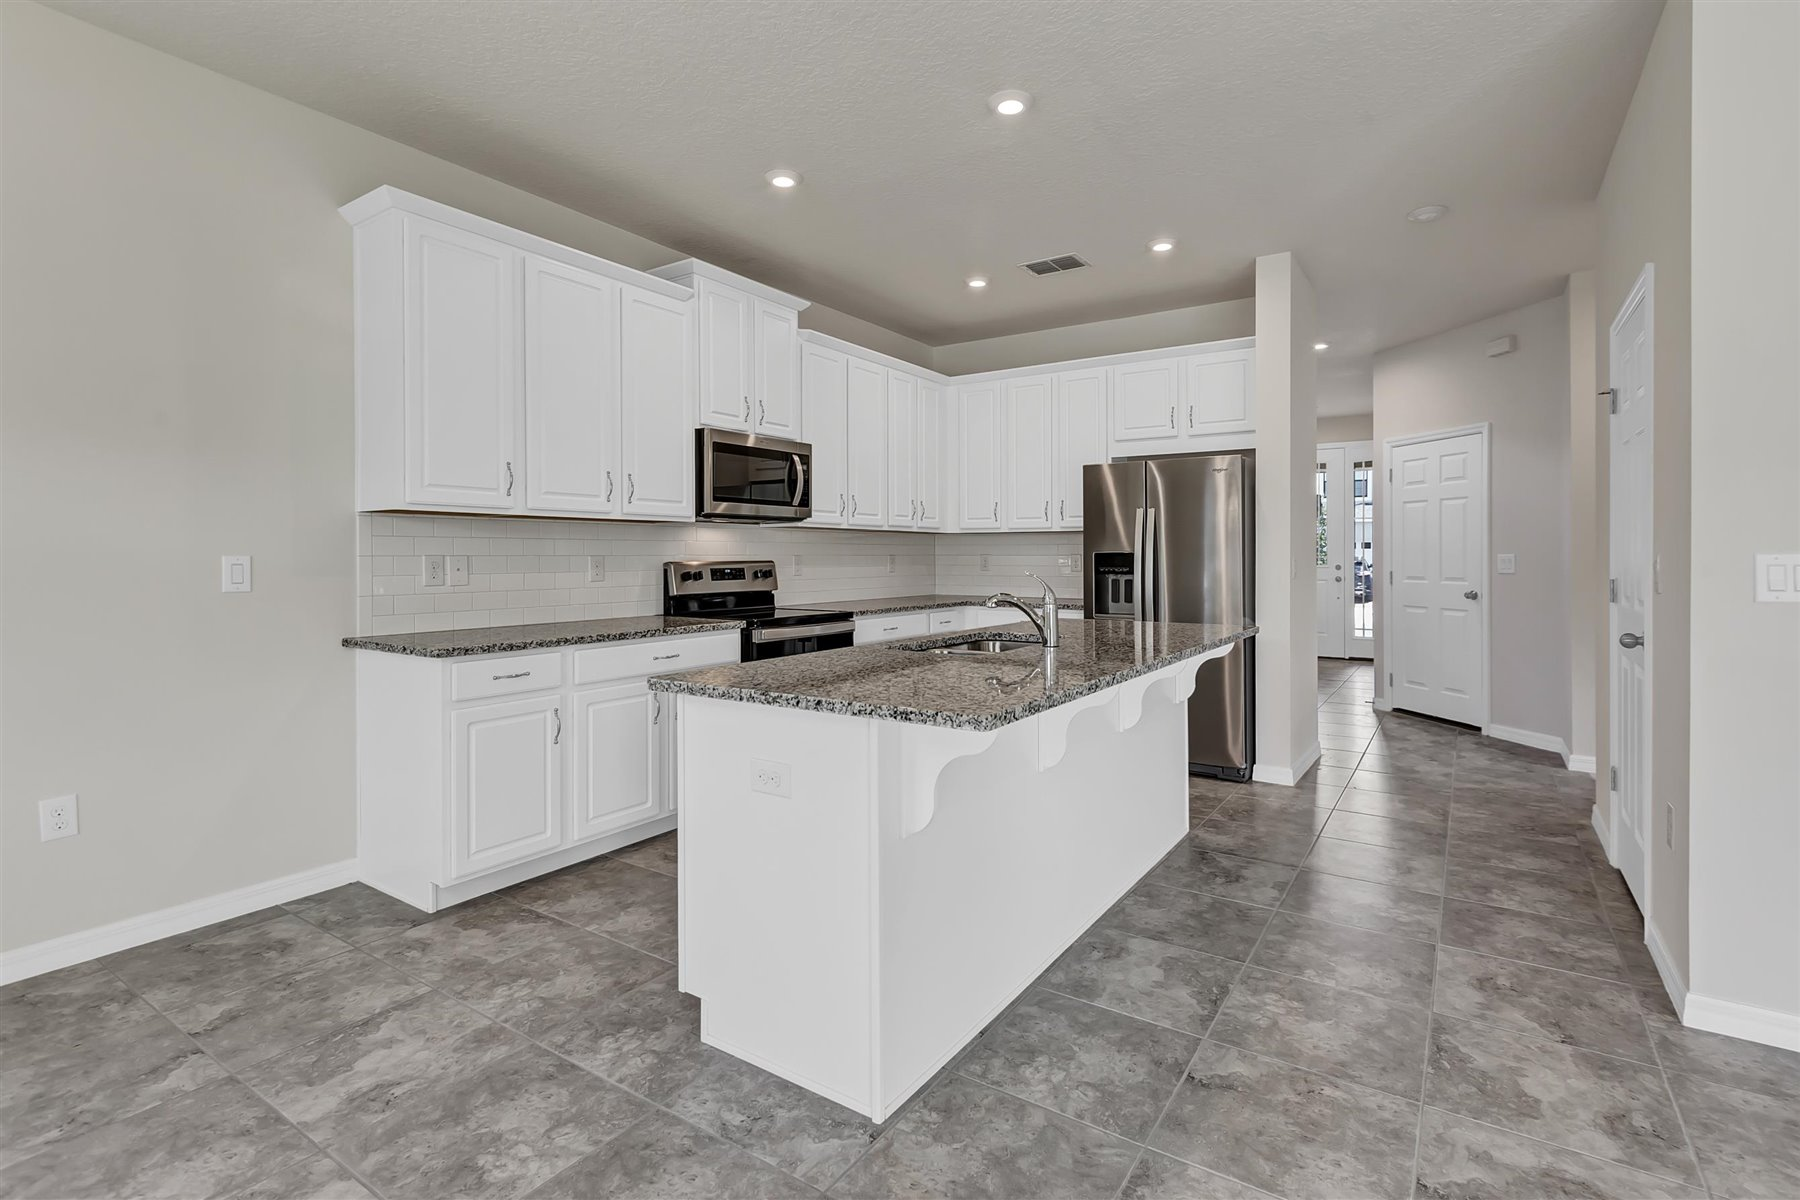 Palmetto Plan Kitchen at Tapestry in Kissimmee Florida by Mattamy Homes